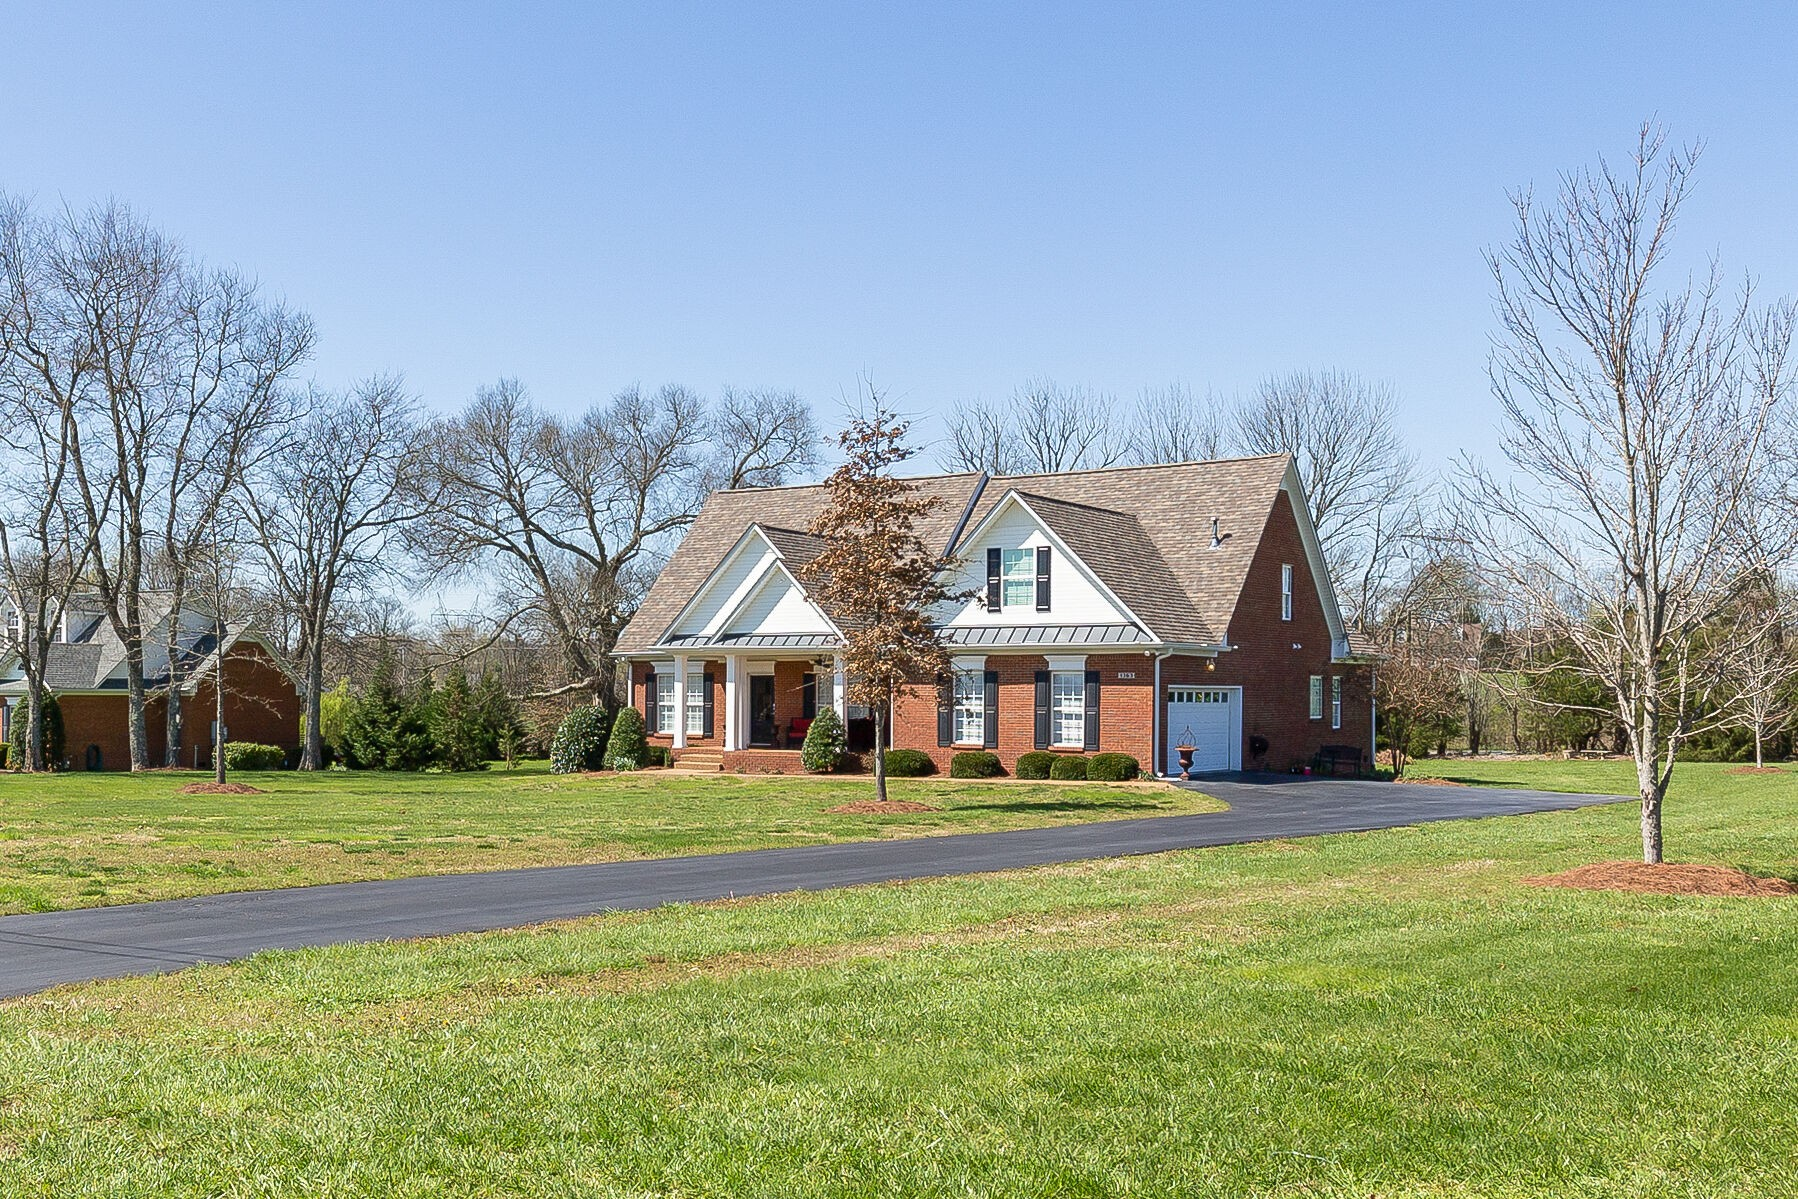 All brick home on 1 acre, country living with convenience. Close to 840 & Saturn Pkwy to 65, on the west edge of Spring Hill. So many updates its like brand new.  Absolutely move in ready. Just completed in 2021 - 2nd floor - bonus room, office w/closet, full bath & separate HVAC. In 2018 - new and refinished hardwood - 1st floor, new appliances & granite counters in the kitchen. 2019 - New roof & 1st floor HVAC, 2020 - New deck.  All offers will be reviewed by seller on Monday 4/12.